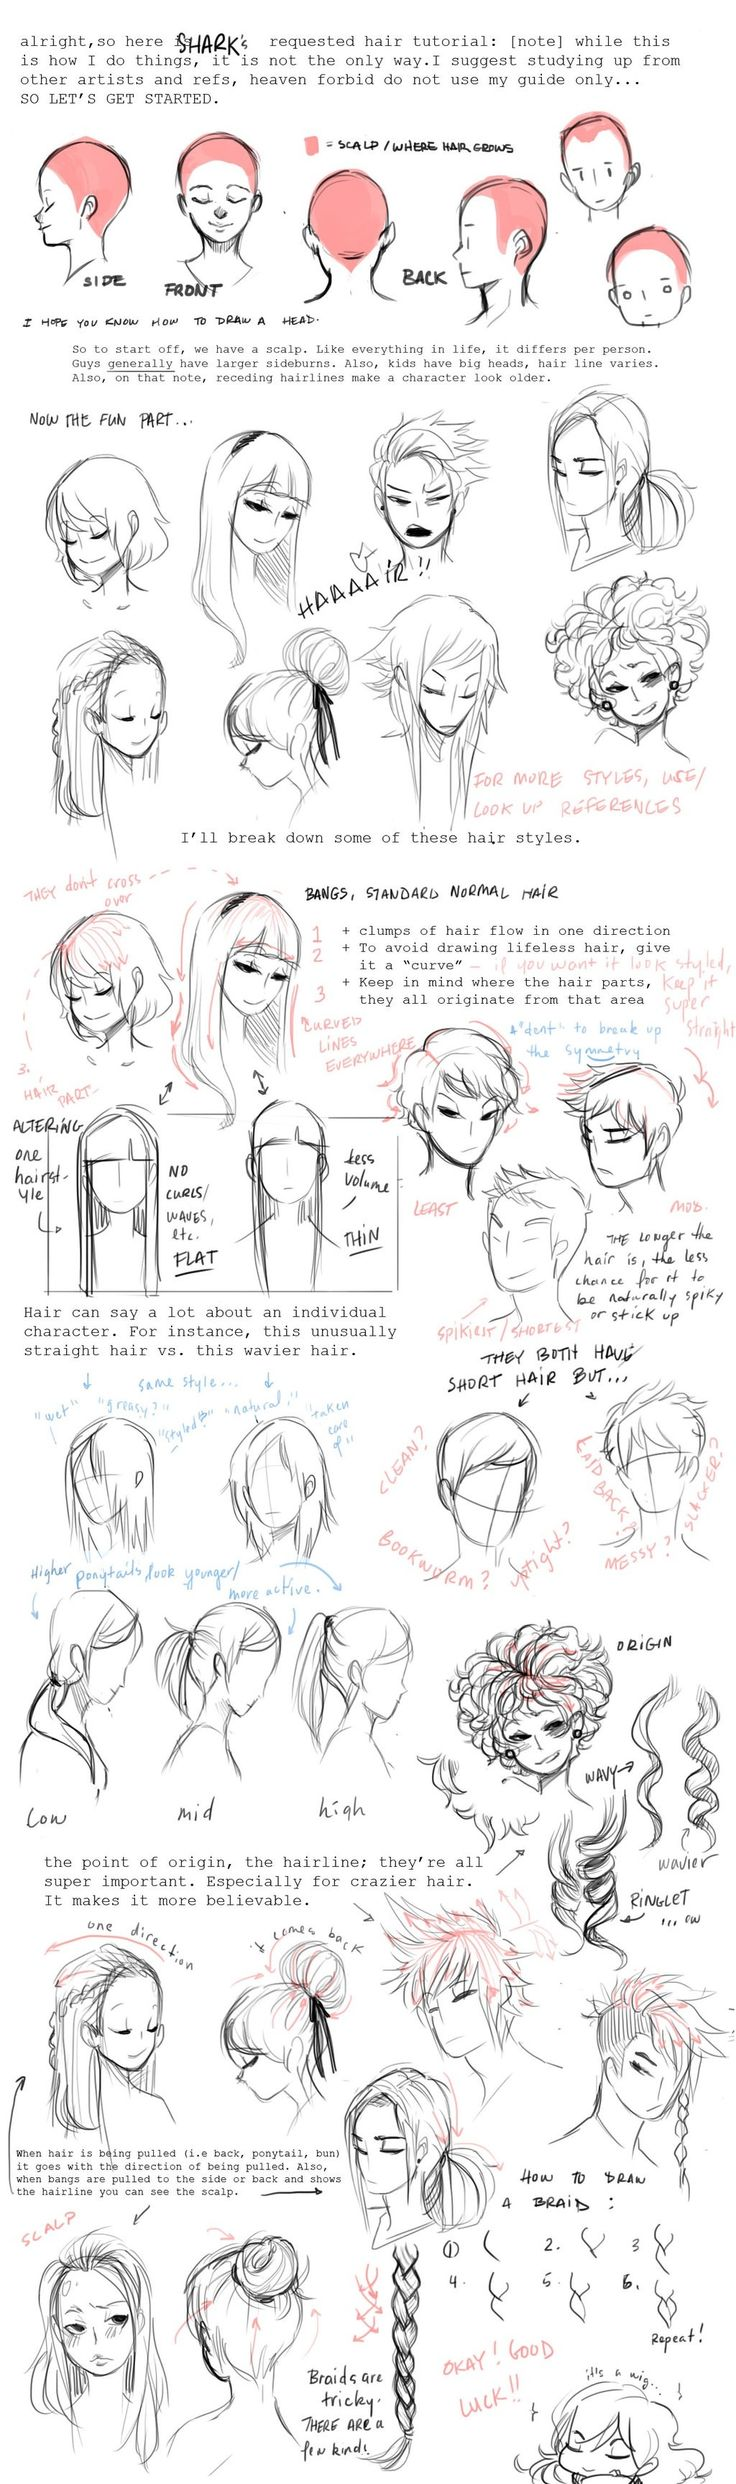 How to sketch hair